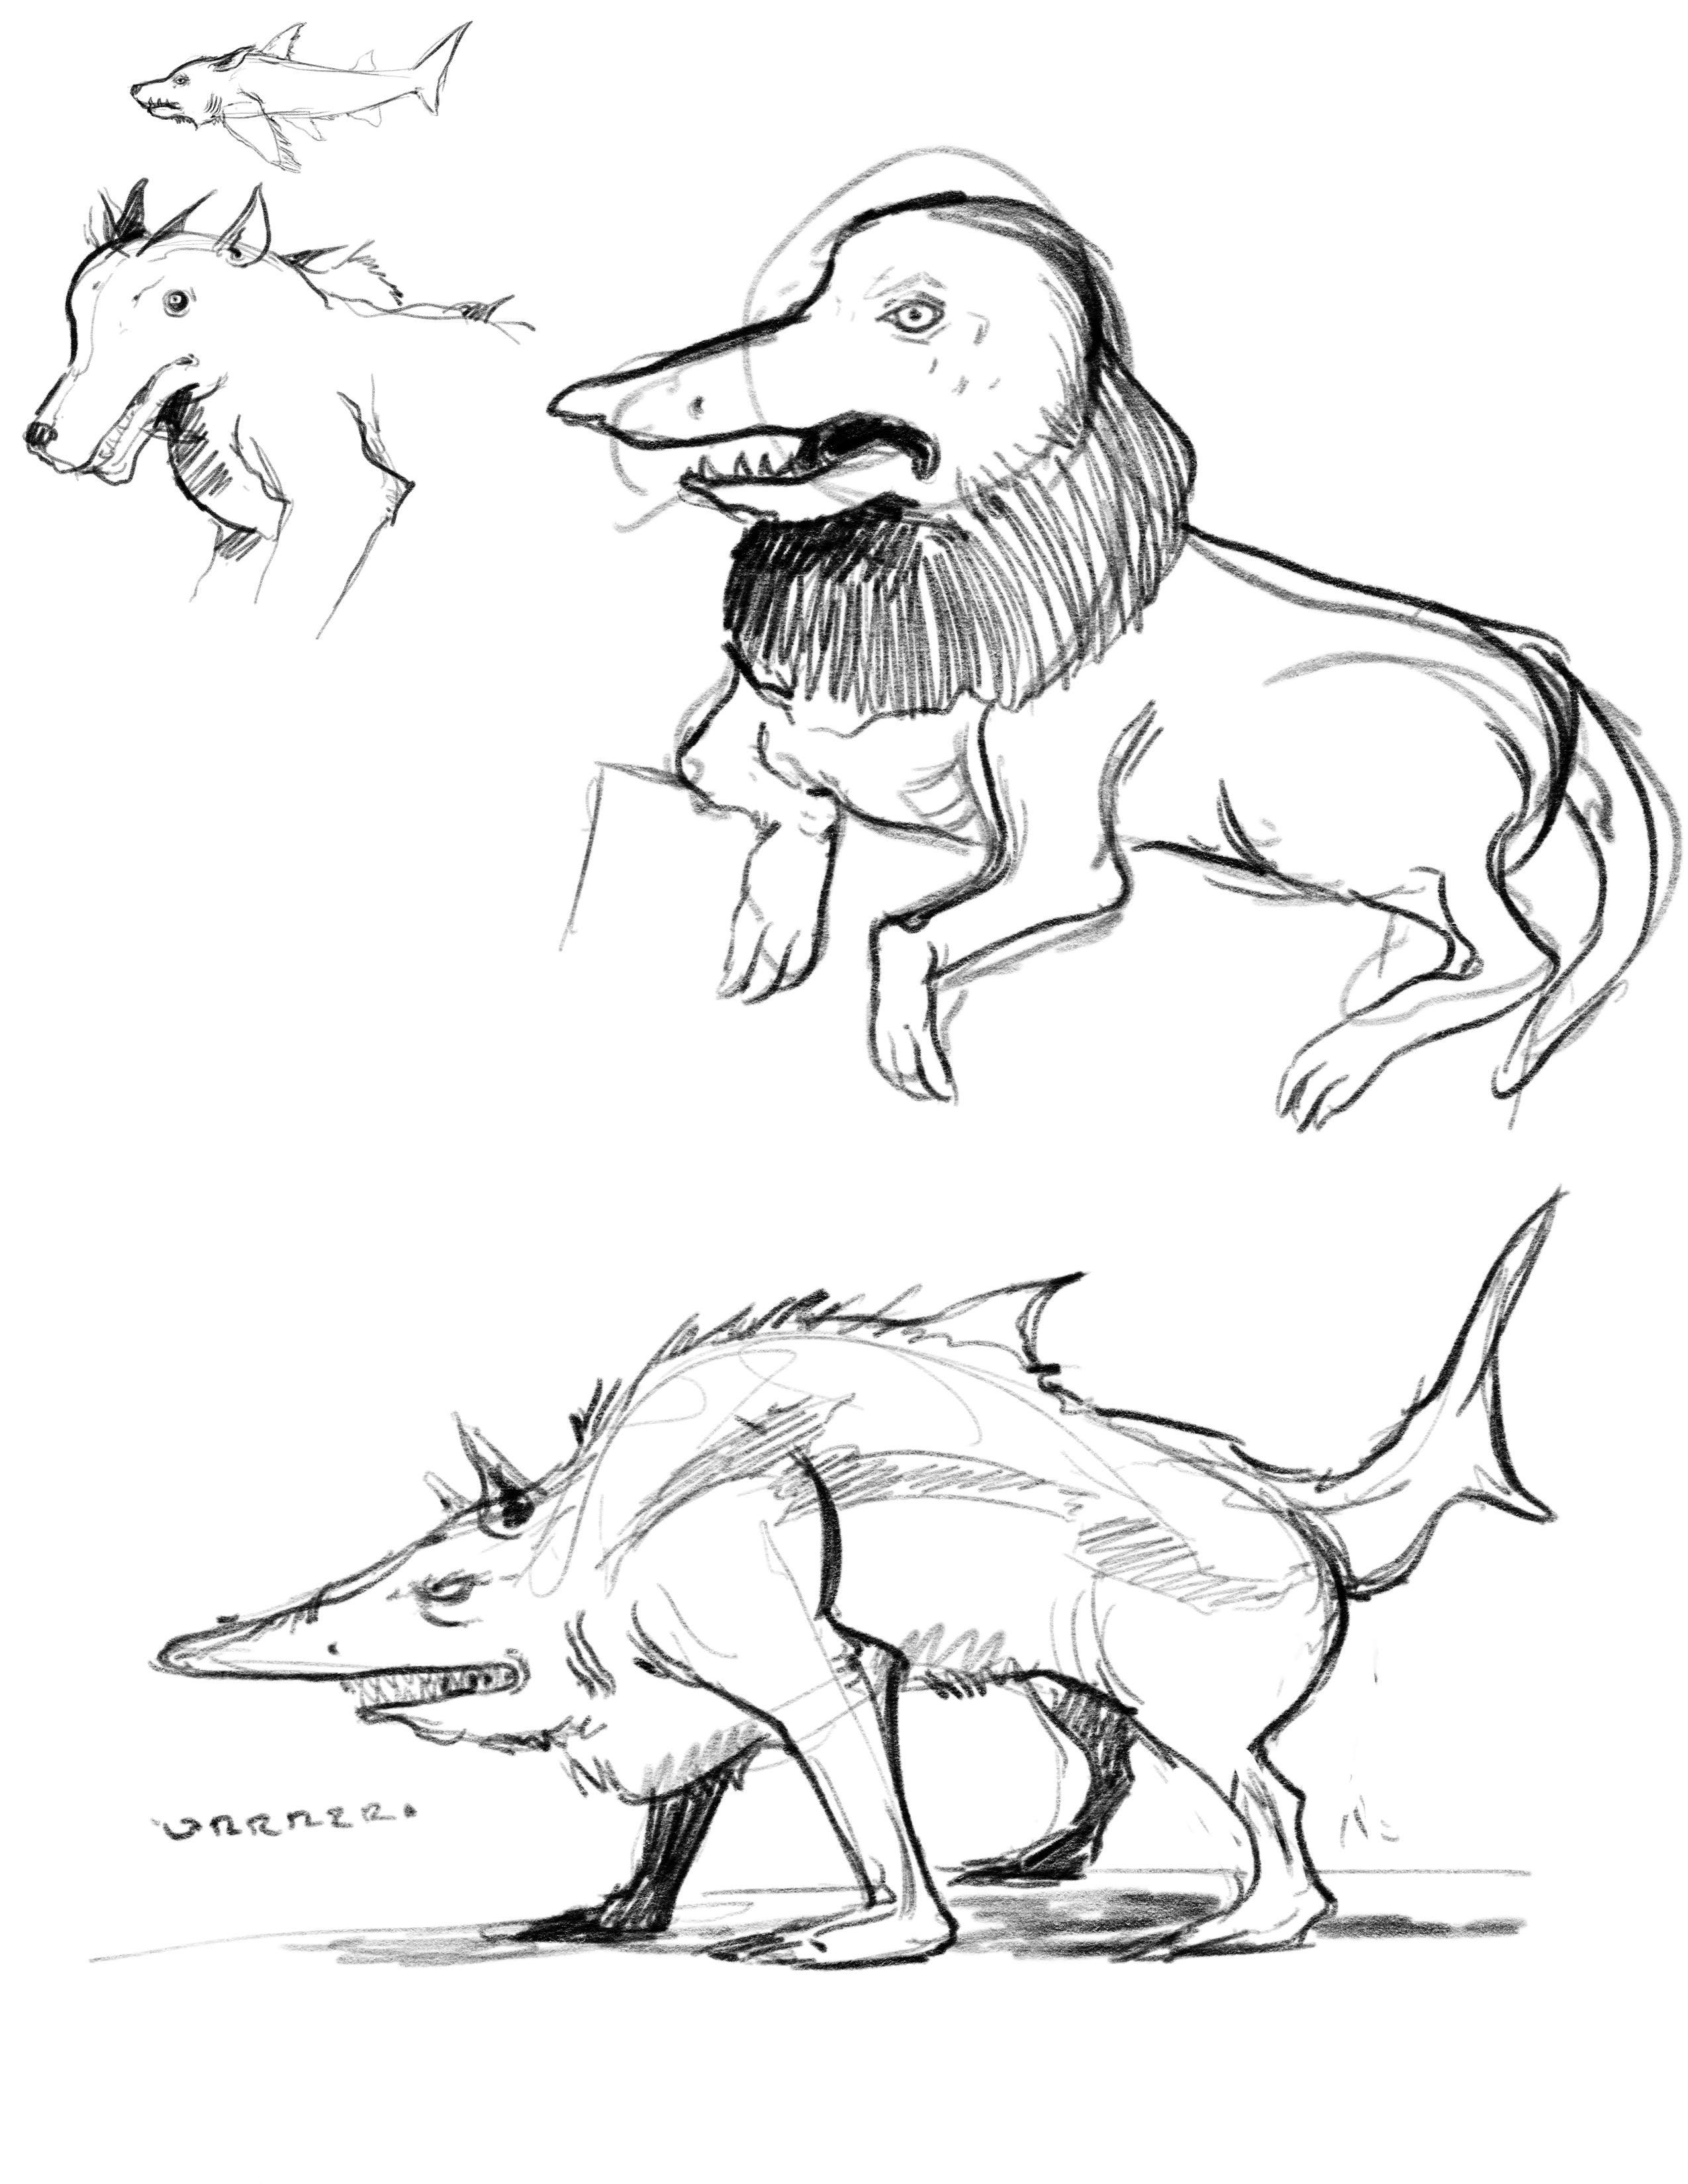 Concept ideation for the Shark Wolf creature character #1.